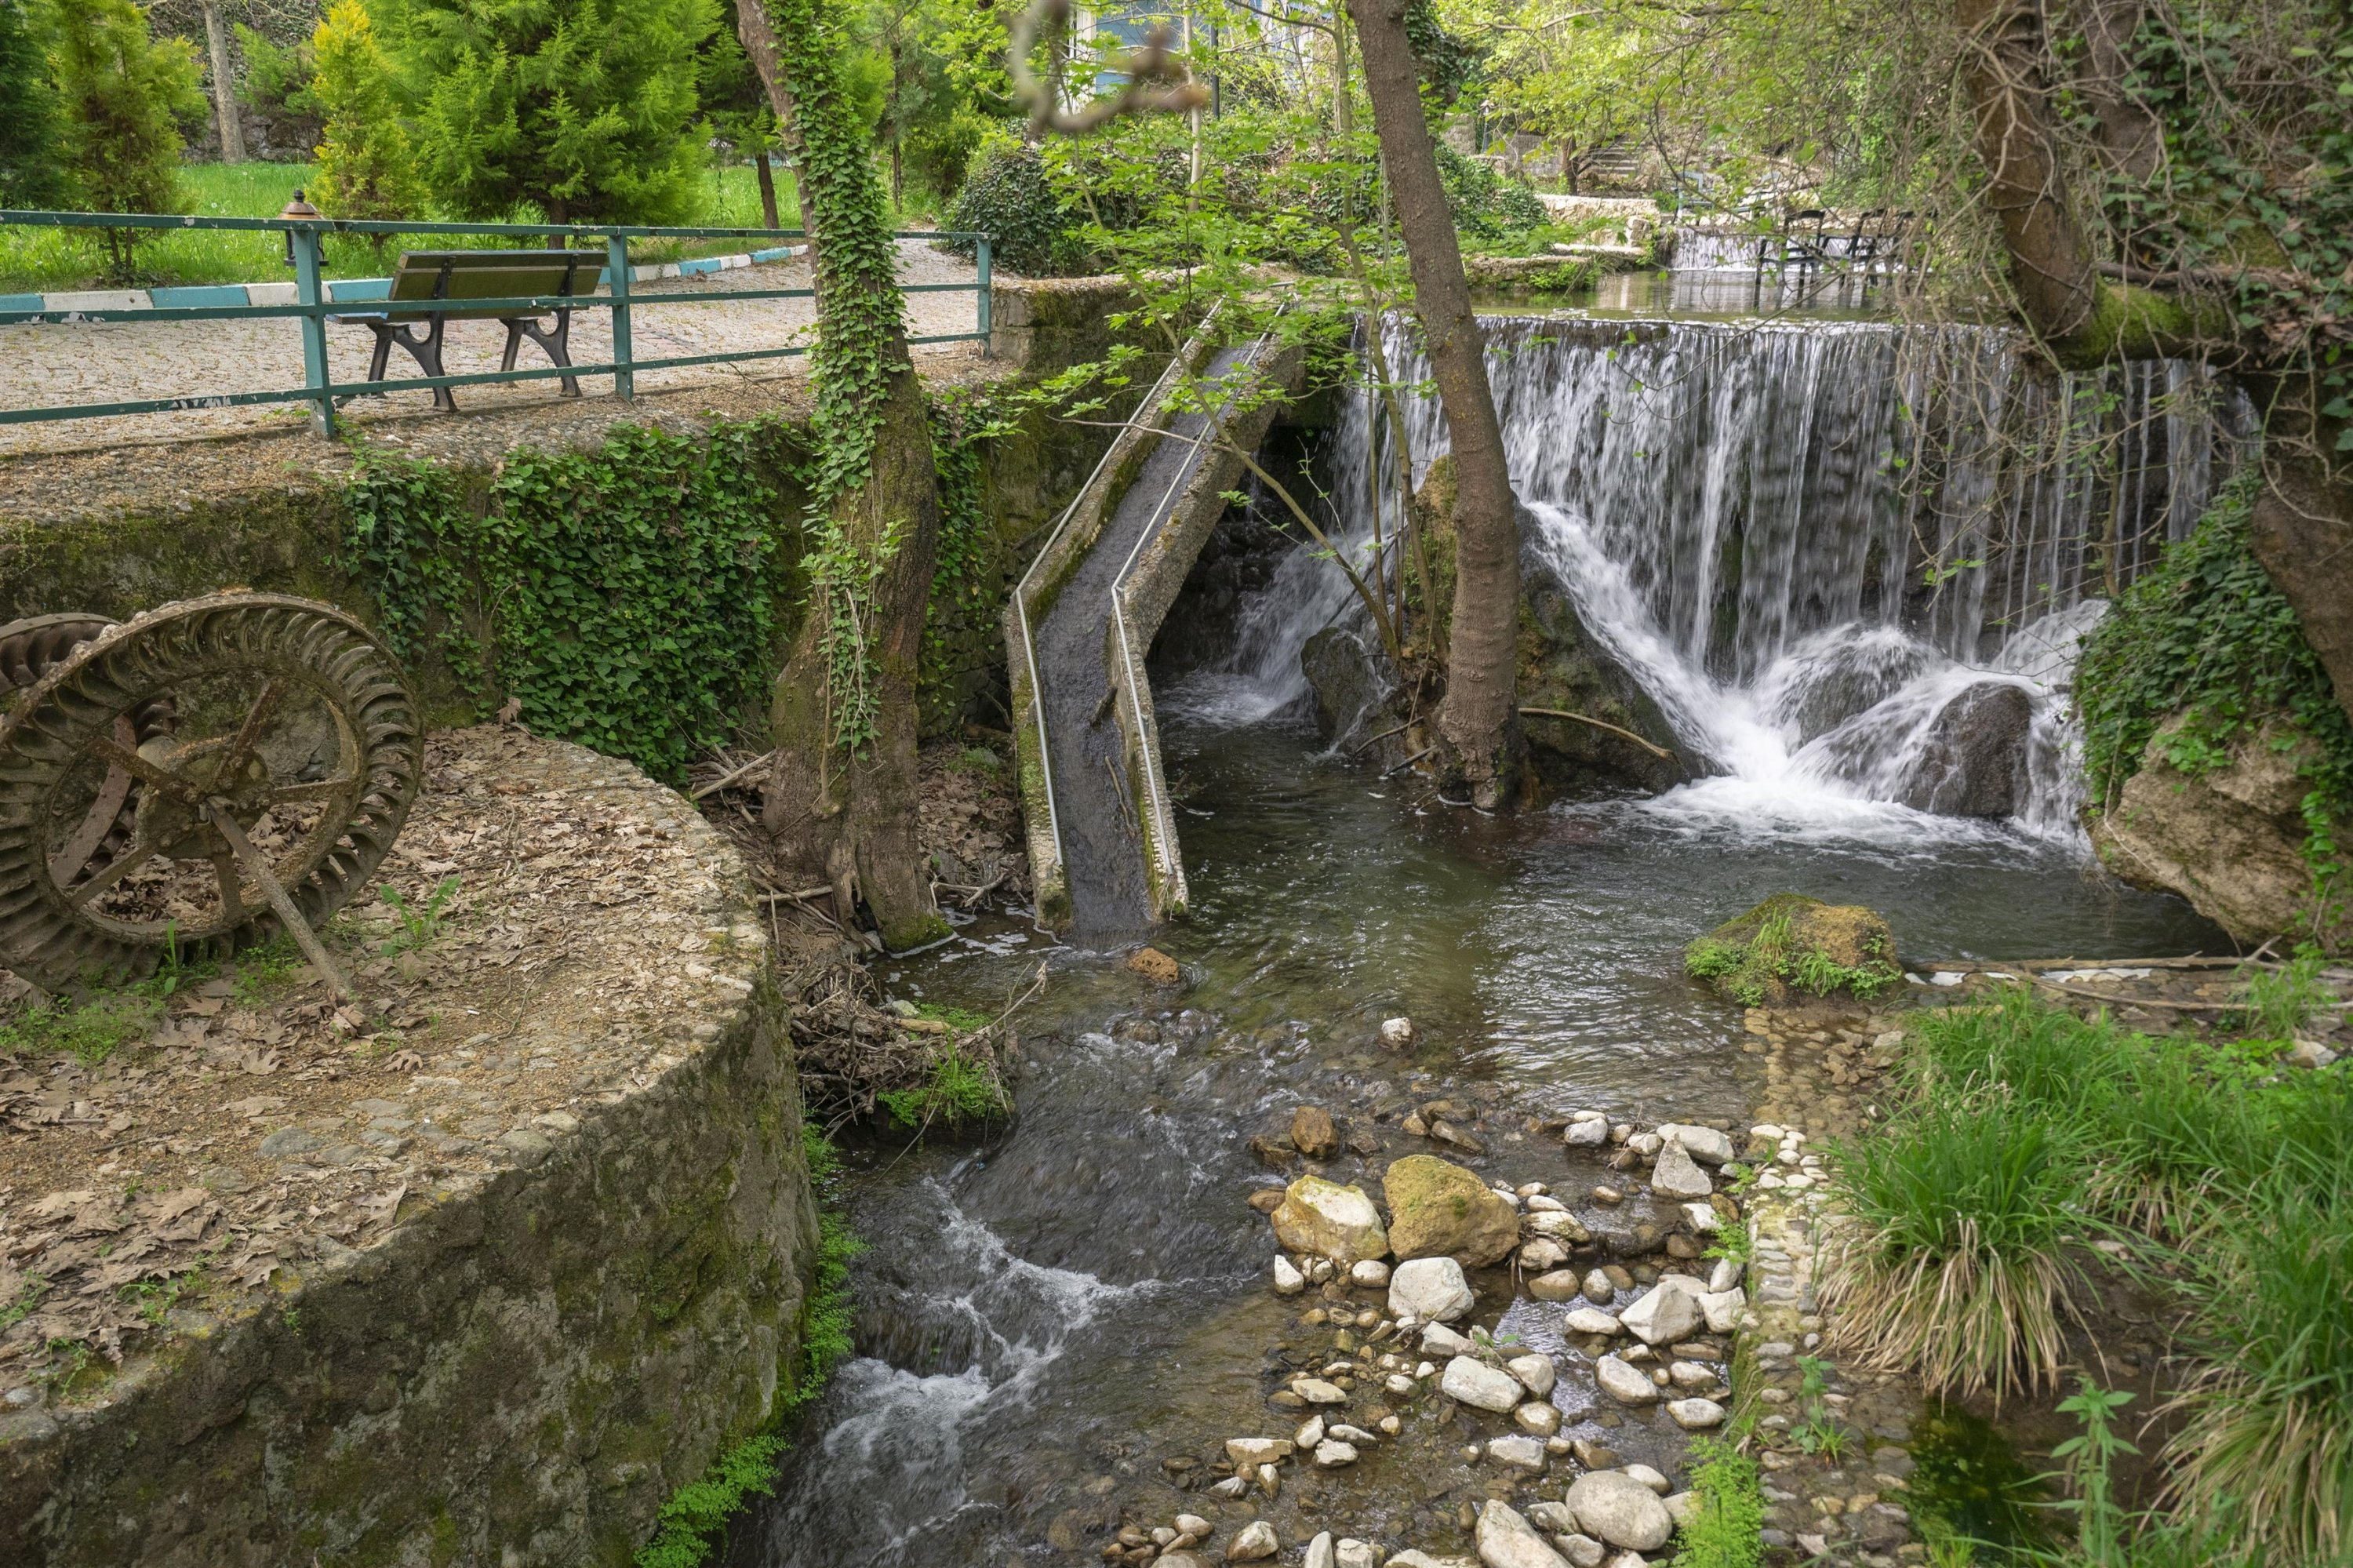 Balıkesir has many natural attractions, such as waterfalls, lakes and rivers. (Supplied / press photo)